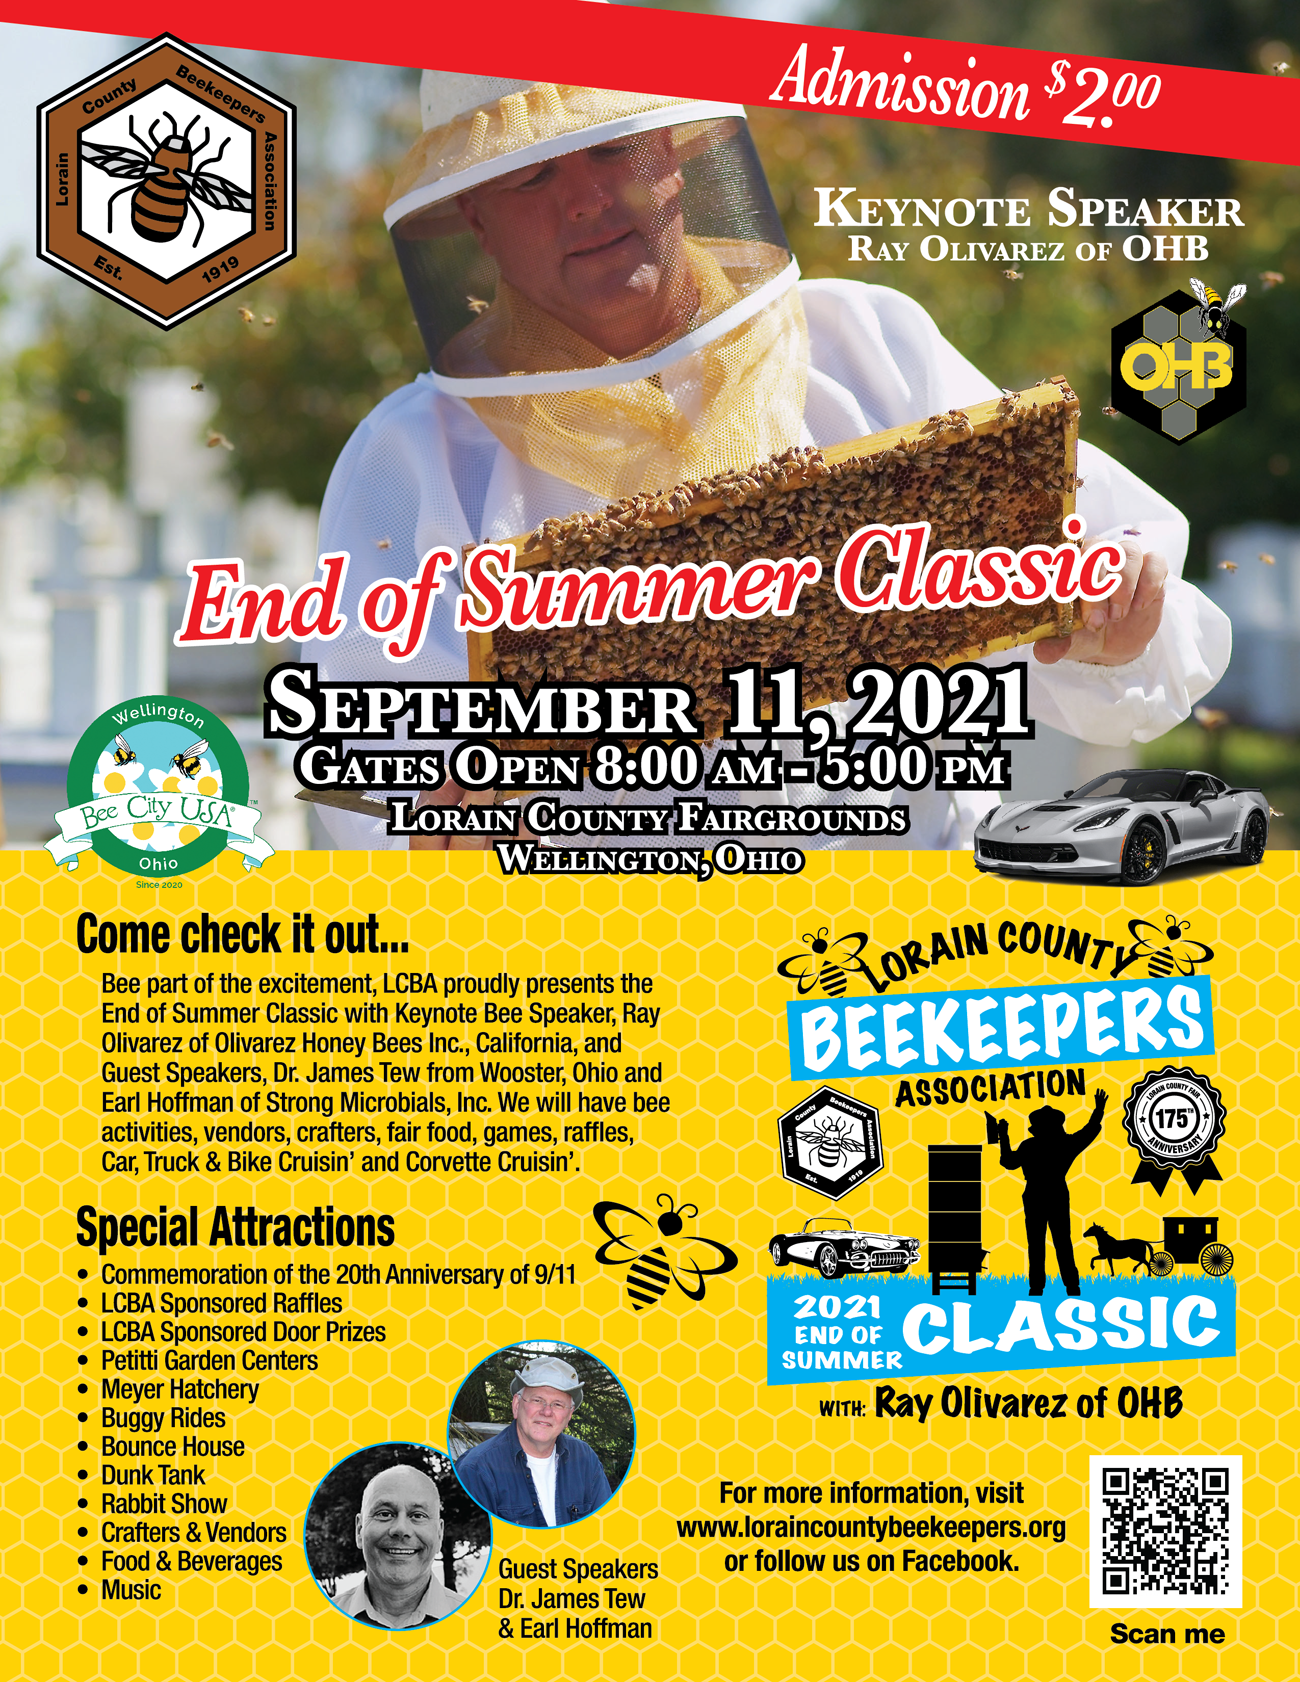 End of Summer Classic